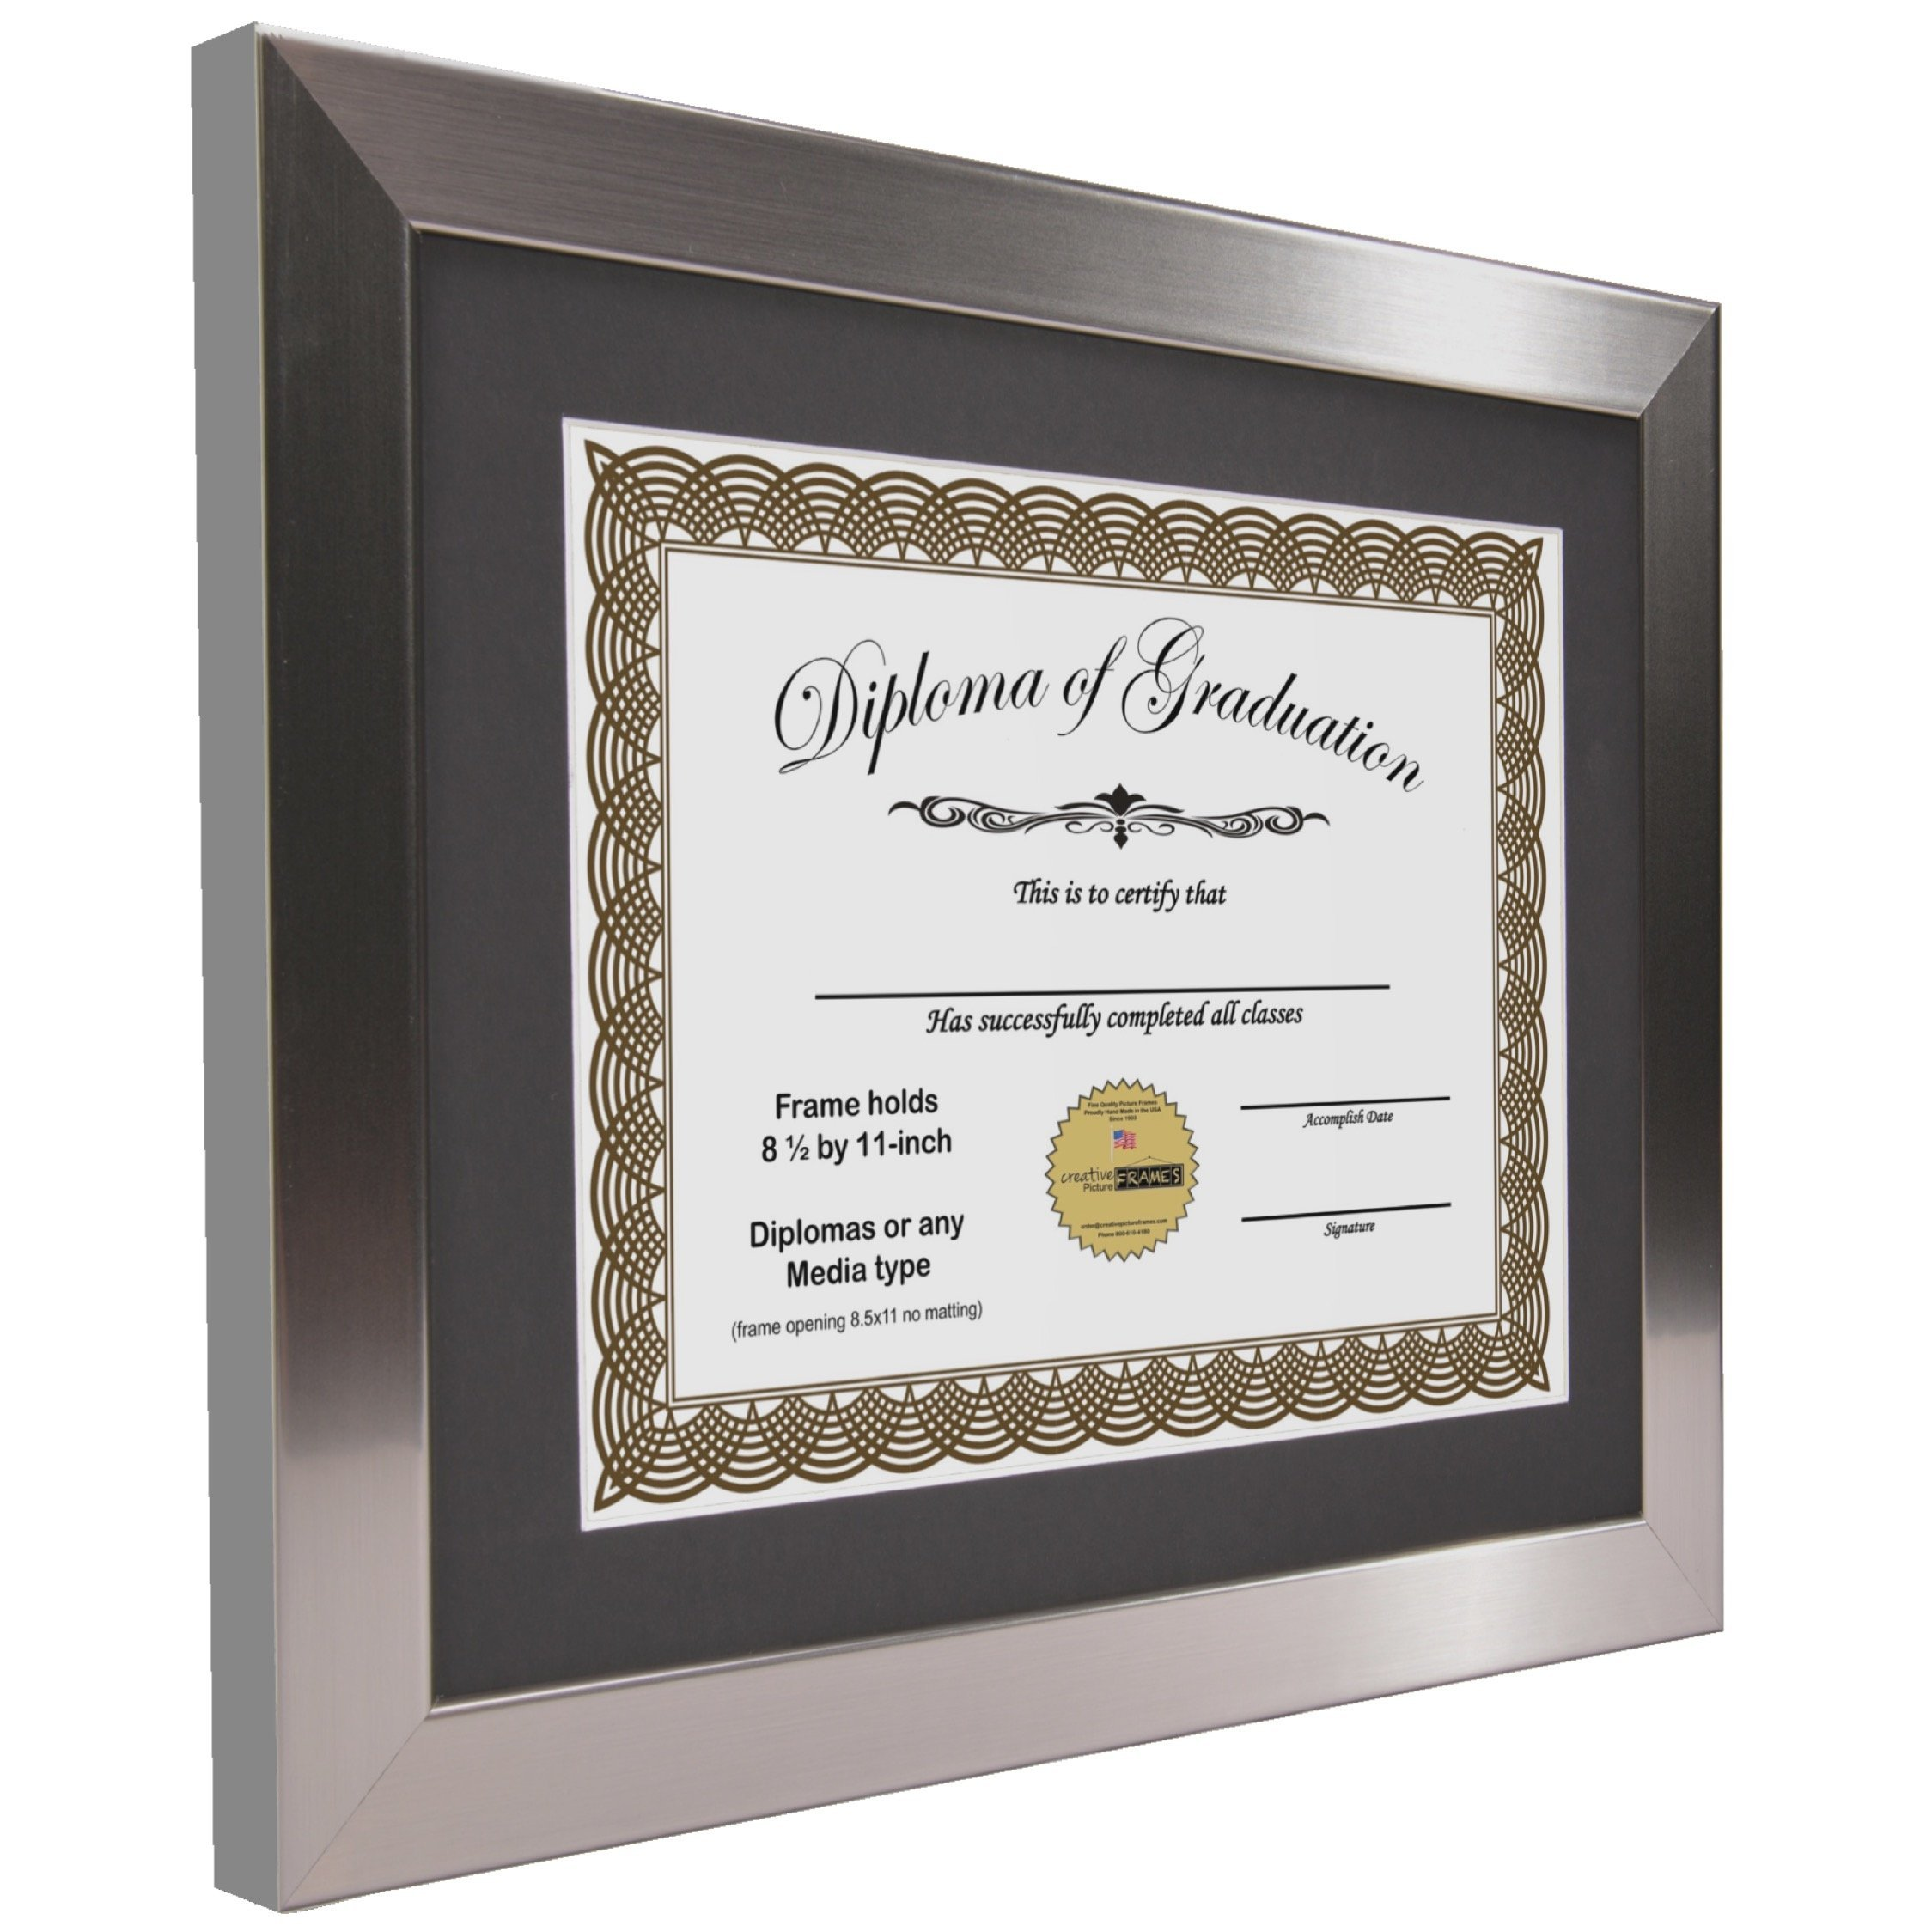 CreativePF [11x14ss] Stainless Steel Finish Diploma Frame with 11x14-inch White Mat to Hold 8.5 by 11-inch Graduation Documents w/ Stand and Wall Hanger (Black Mat-Stainless Steel Frame, 4) by Creative Picture Frames (Image #3)